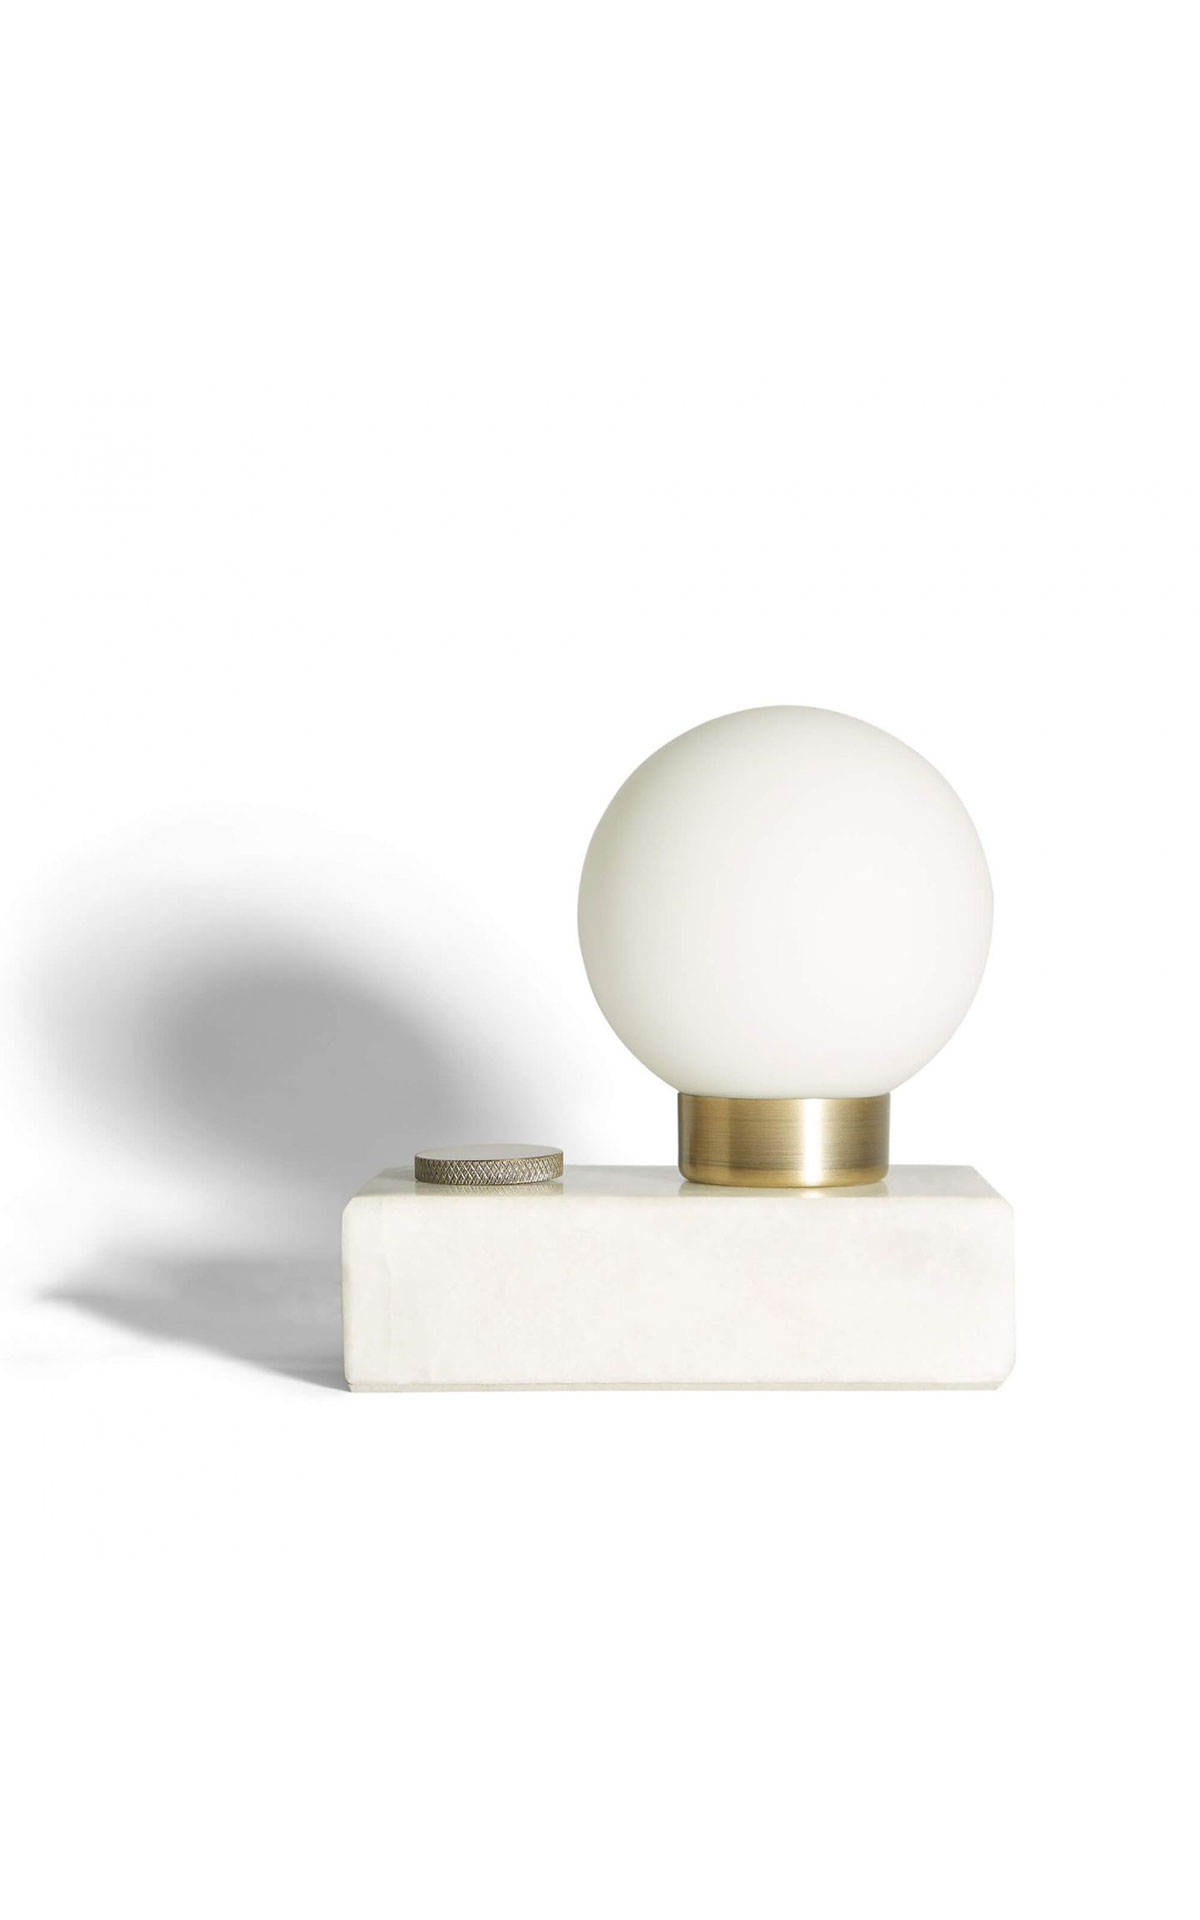 Soho Home Globe table light from Bicester Village